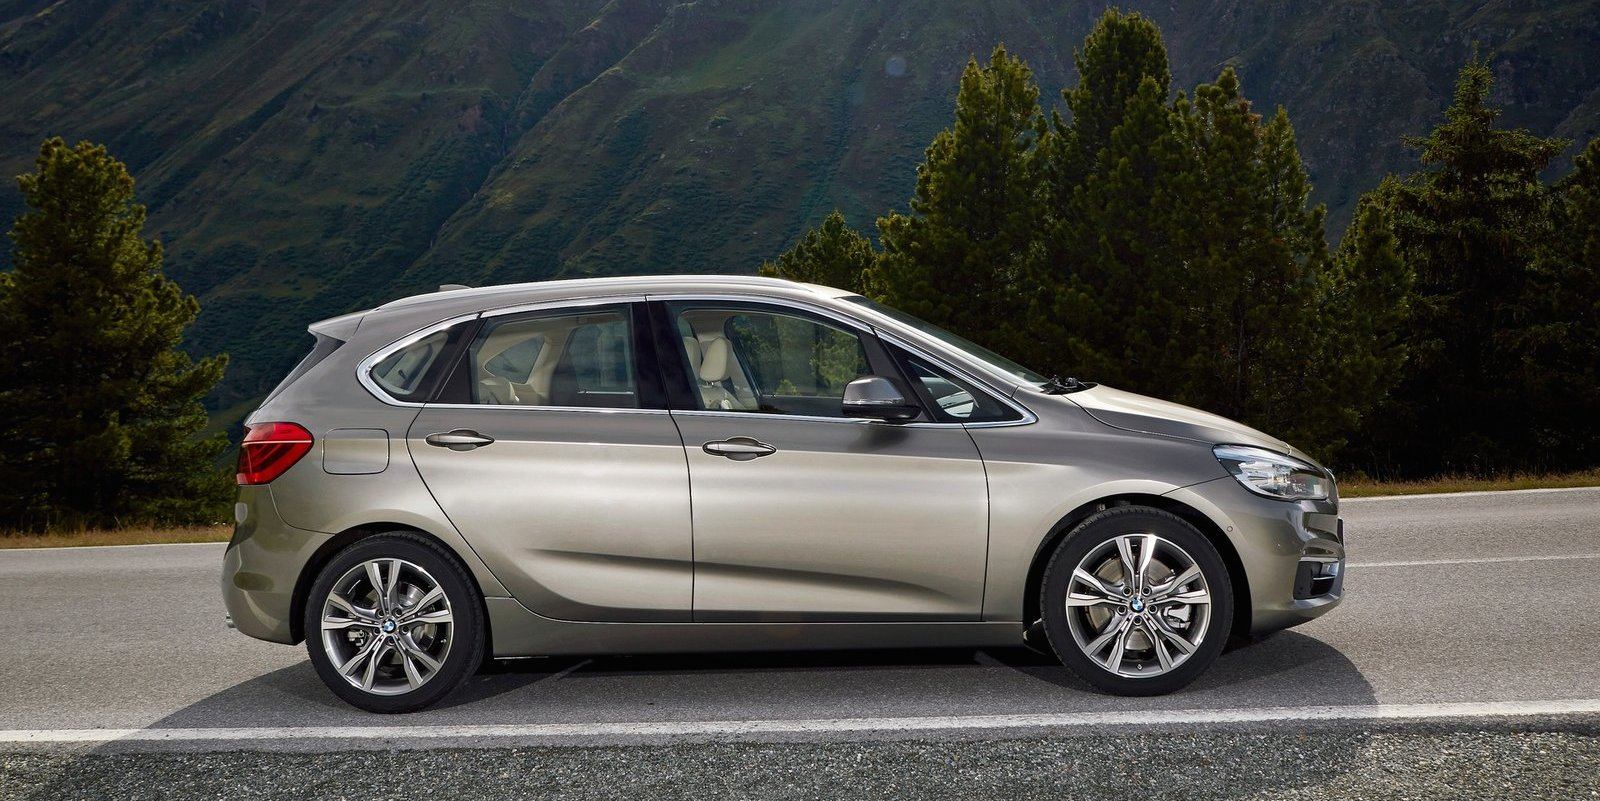 bmw 2 series active tourer 216d 220d 220i xdrive variants expand mpv range photos 1 of 3. Black Bedroom Furniture Sets. Home Design Ideas